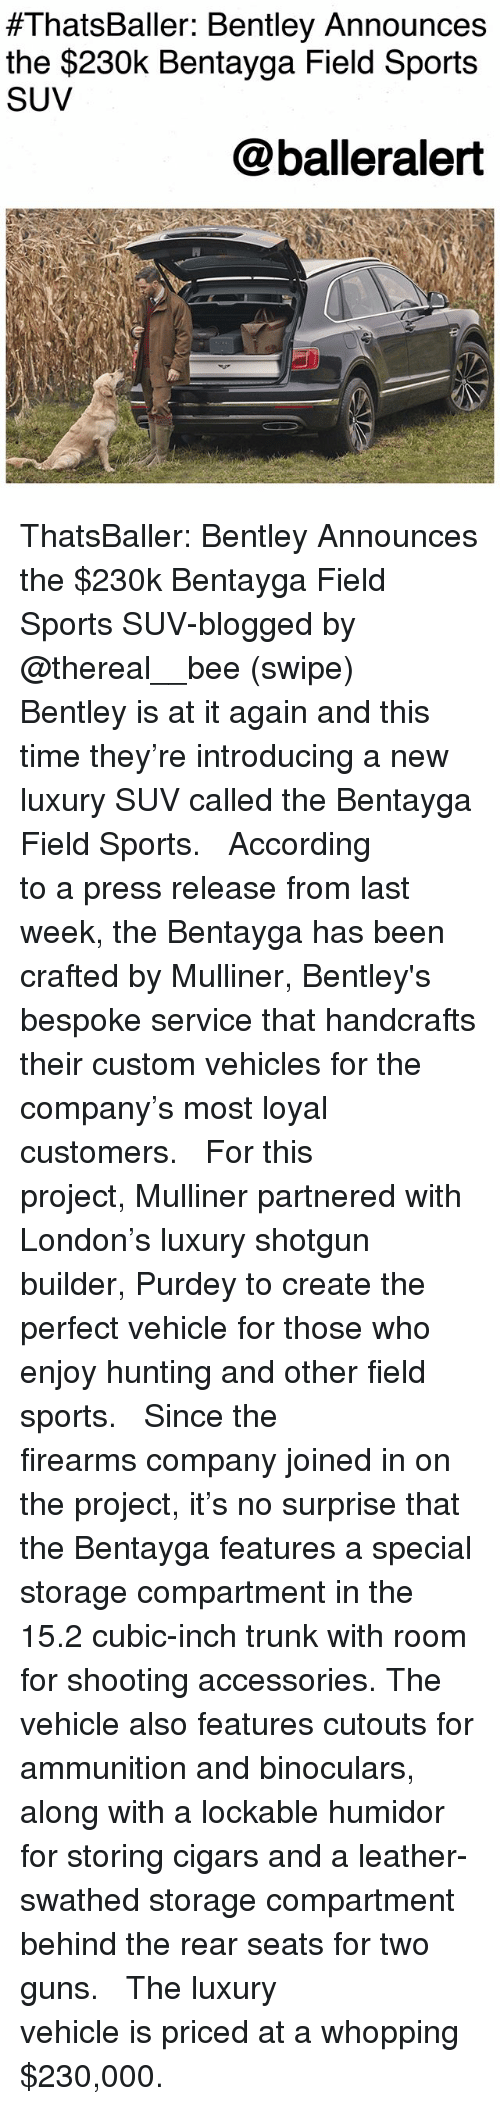 Guns, Memes, and Sports:  #ThatsBaller: Bentley Announces  the $230k Bentayga Field Sports  SUV  @balleralert ThatsBaller: Bentley Announces the $230k Bentayga Field Sports SUV-blogged by @thereal__bee (swipe) ⠀⠀⠀⠀⠀⠀⠀⠀⠀ ⠀⠀ Bentley is at it again and this time they're introducing a new luxury SUV called the Bentayga Field Sports. ⠀⠀⠀⠀⠀⠀⠀⠀⠀ ⠀⠀ According to a press release from last week, the Bentayga has been crafted by Mulliner, Bentley's bespoke service that handcrafts their custom vehicles for the company's most loyal customers. ⠀⠀⠀⠀⠀⠀⠀⠀⠀ ⠀⠀ For this project, Mulliner partnered with London's luxury shotgun builder, Purdey to create the perfect vehicle for those who enjoy hunting and other field sports. ⠀⠀⠀⠀⠀⠀⠀⠀⠀ ⠀⠀ Since the firearms company joined in on the project, it's no surprise that the Bentayga features a special storage compartment in the 15.2 cubic-inch trunk with room for shooting accessories. The vehicle also features cutouts for ammunition and binoculars, along with a lockable humidor for storing cigars and a leather-swathed storage compartment behind the rear seats for two guns. ⠀⠀⠀⠀⠀⠀⠀⠀⠀ ⠀⠀ The luxury vehicle is priced at a whopping $230,000.